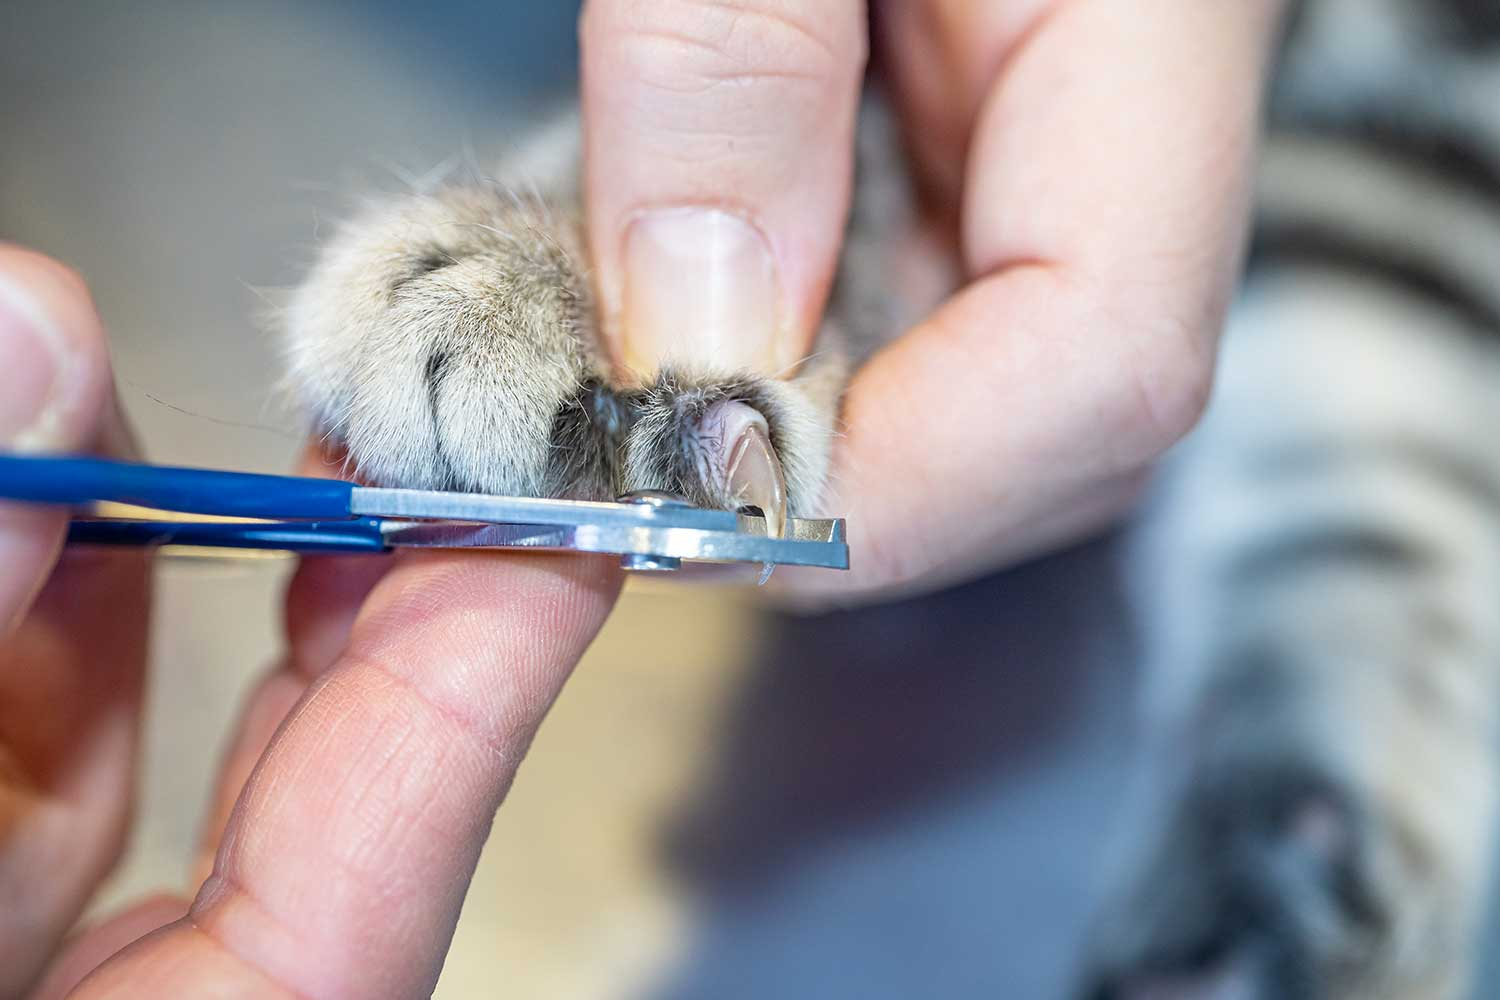 European Shorthair cat nail cutting by a veterinary nurse